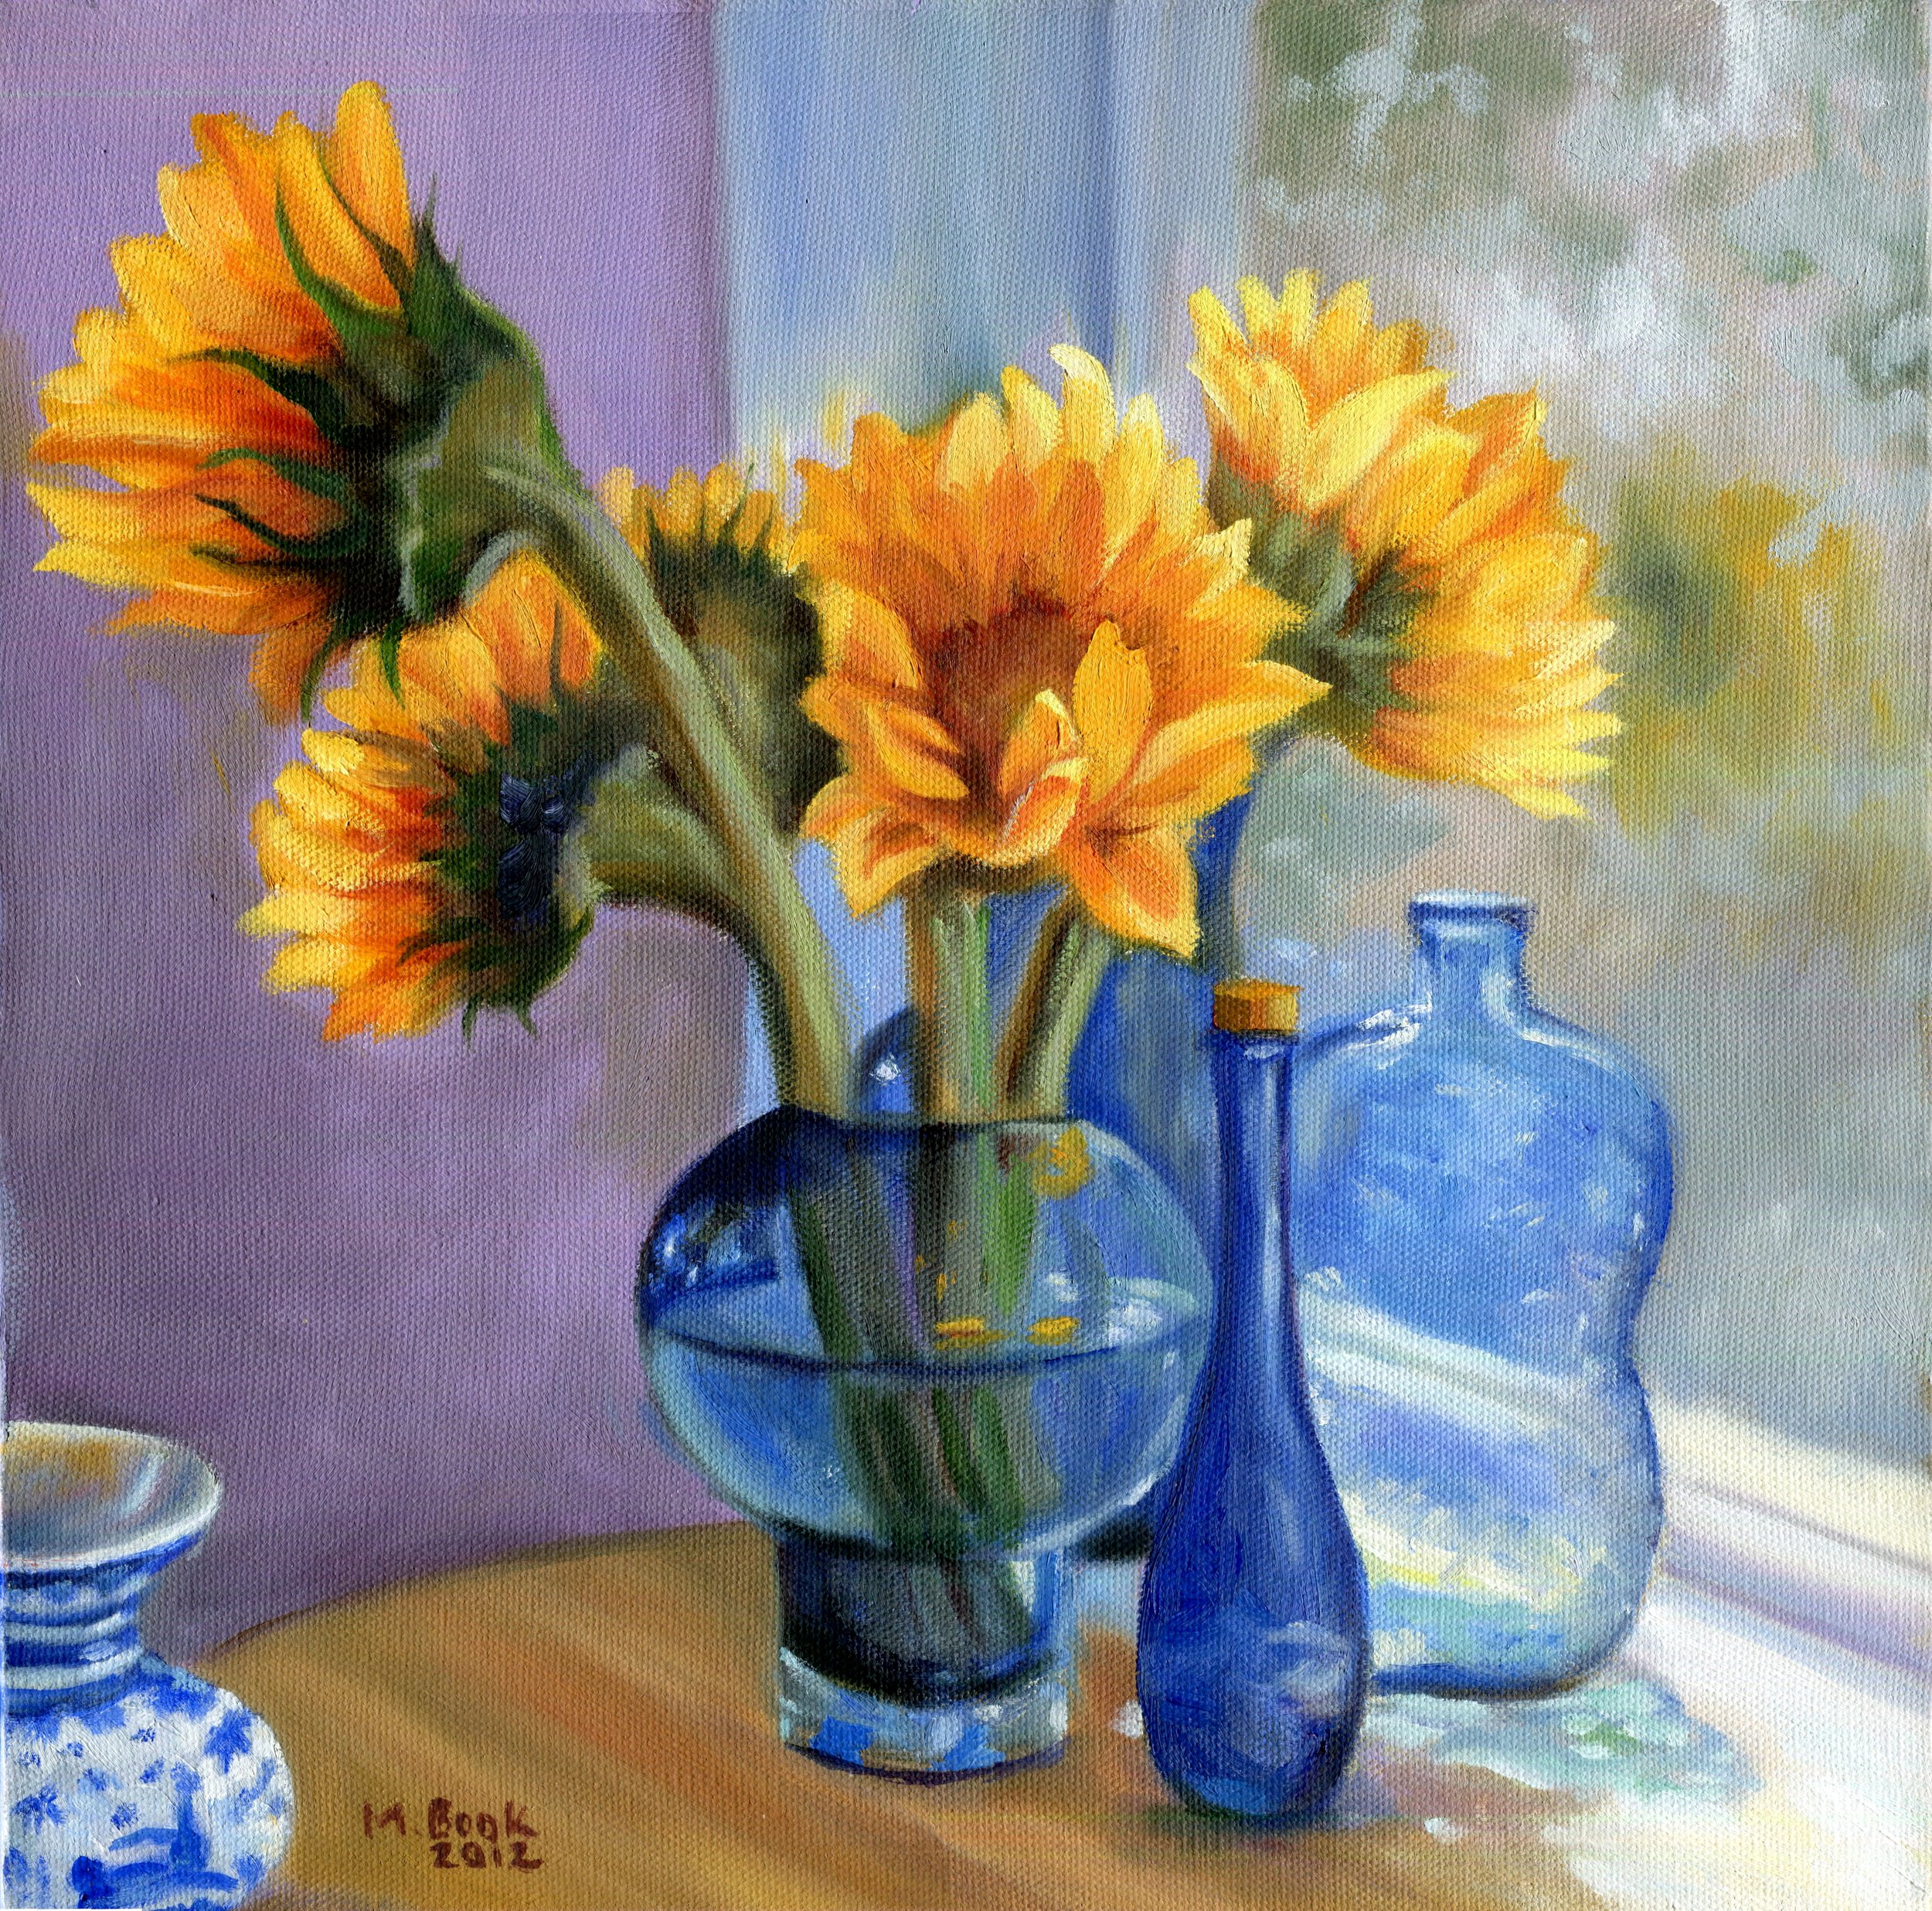 Sunflowers and Blue Bottles.JPG